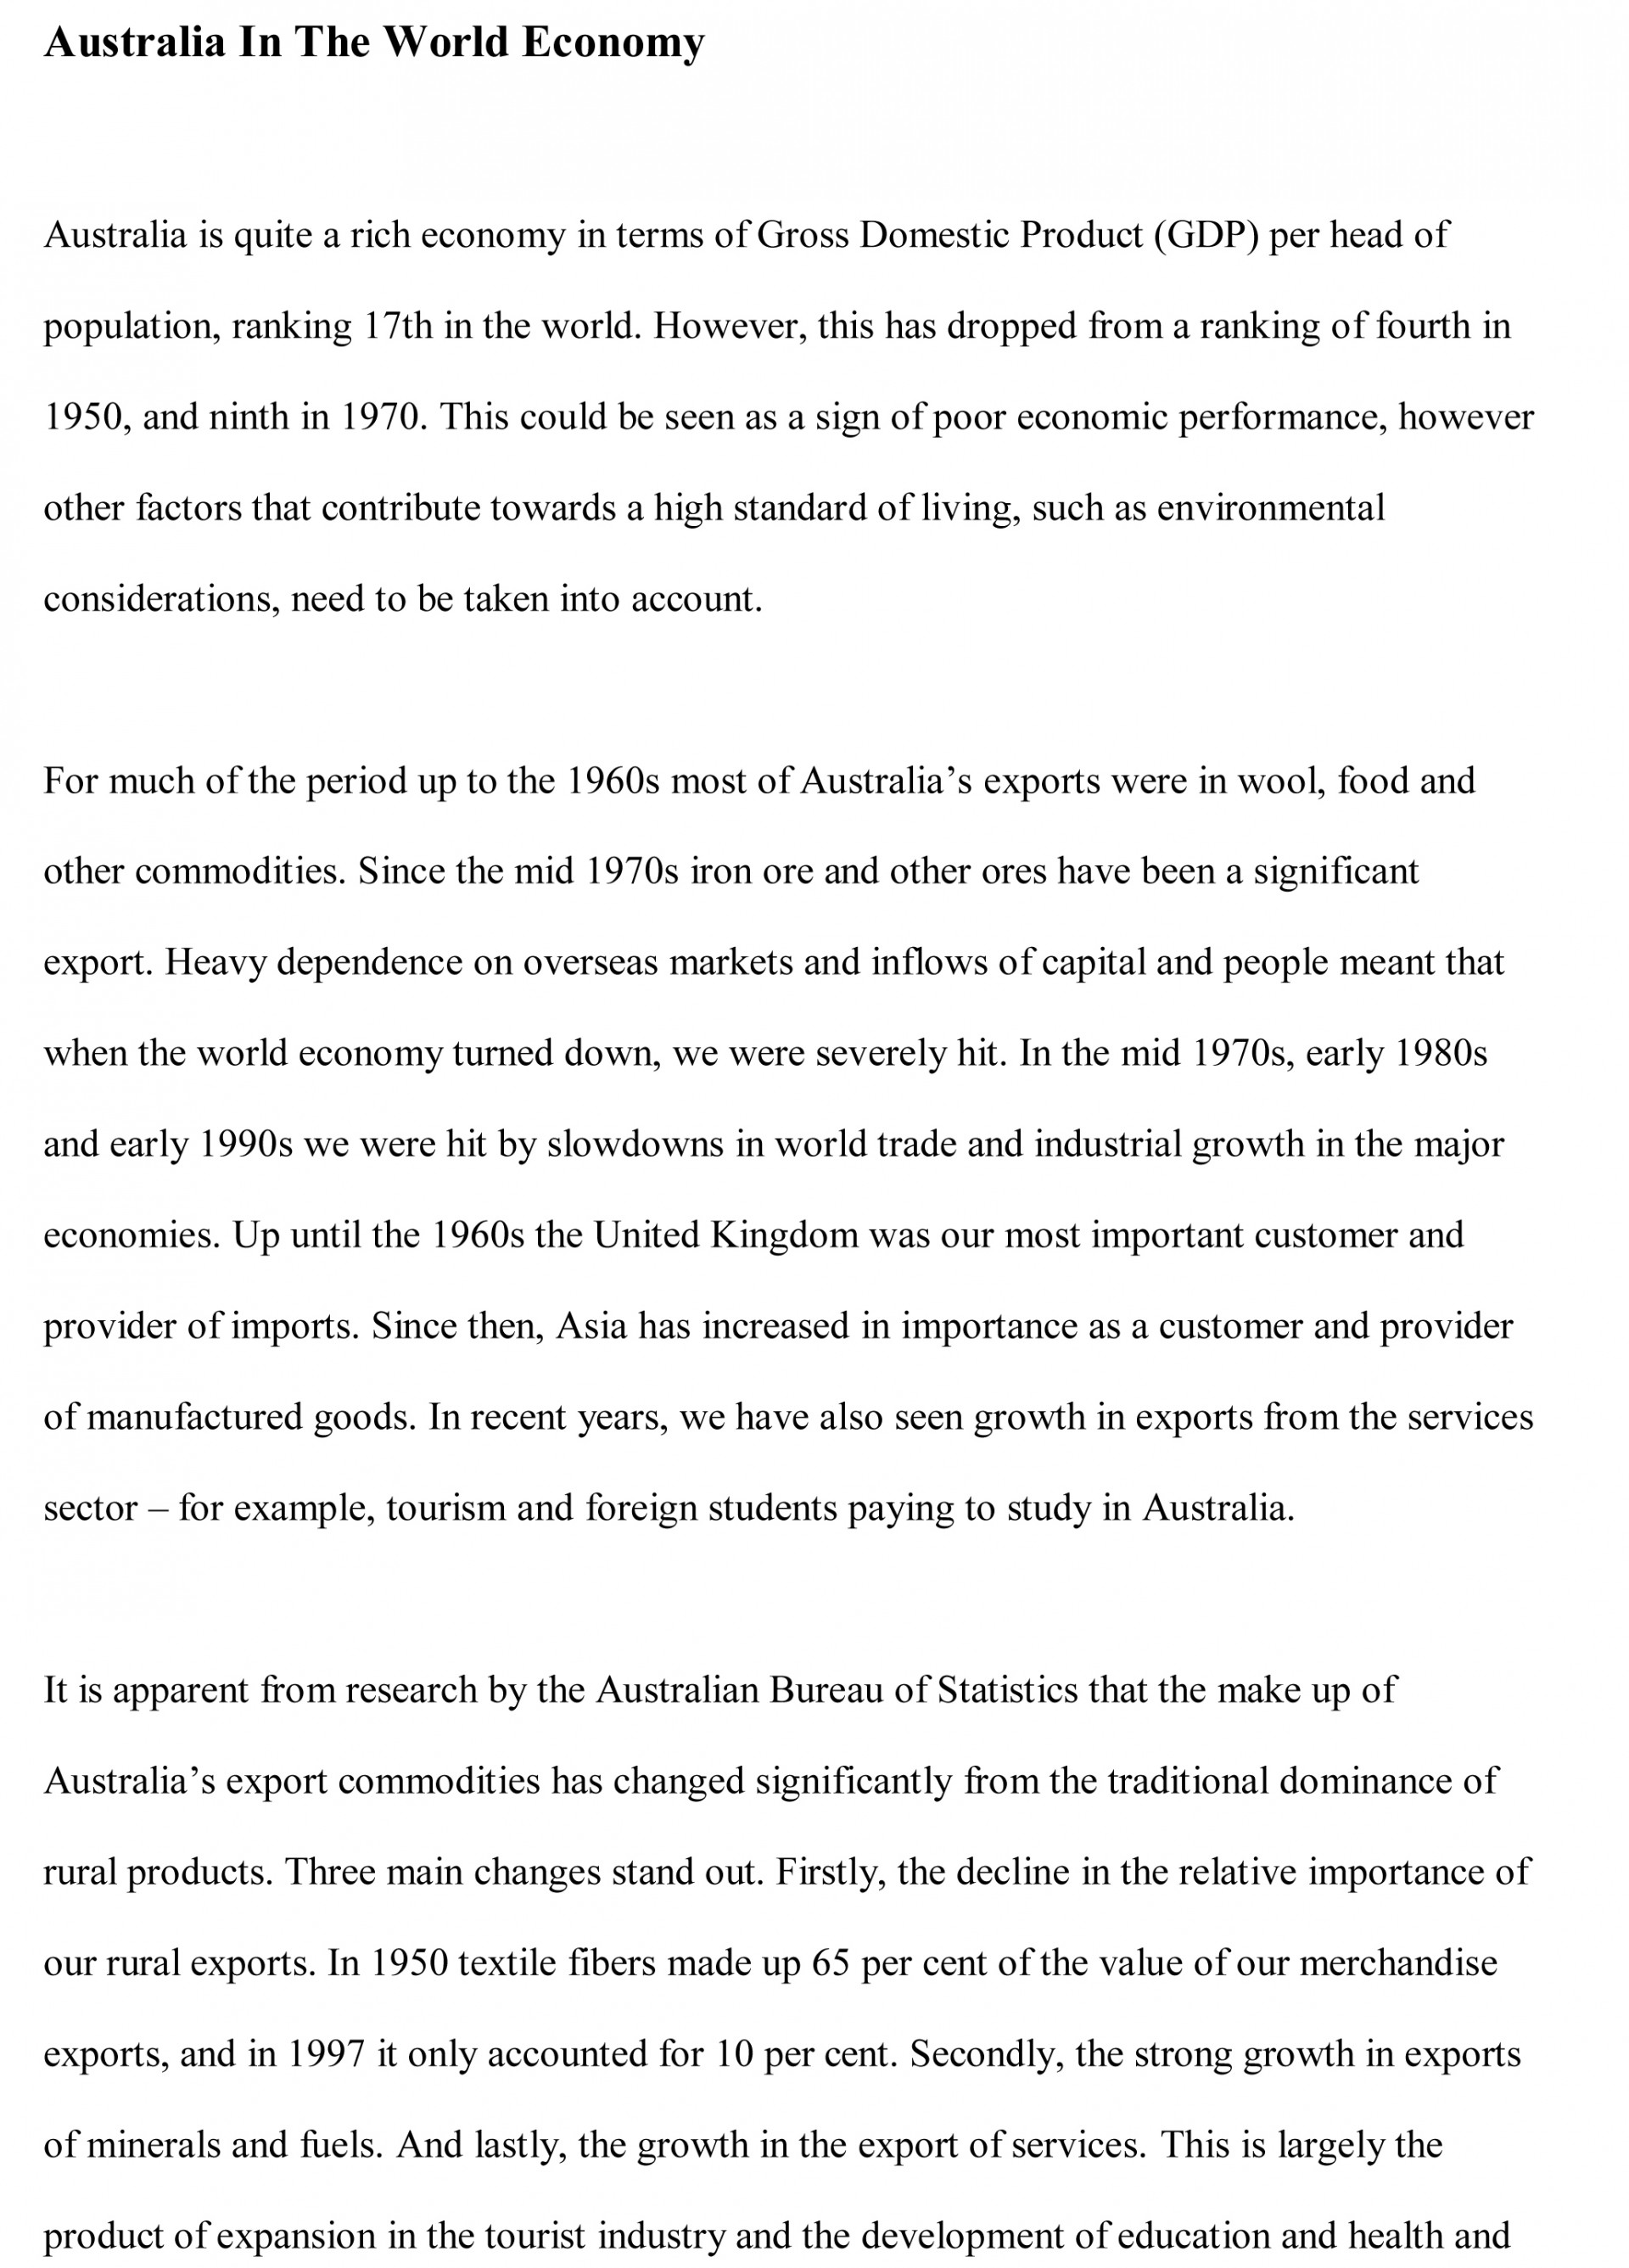 014 Essay Example How To Essays Economics Free Excellent Write An Expository For 4th Grade Make Longer With Words Start Introduction 1920